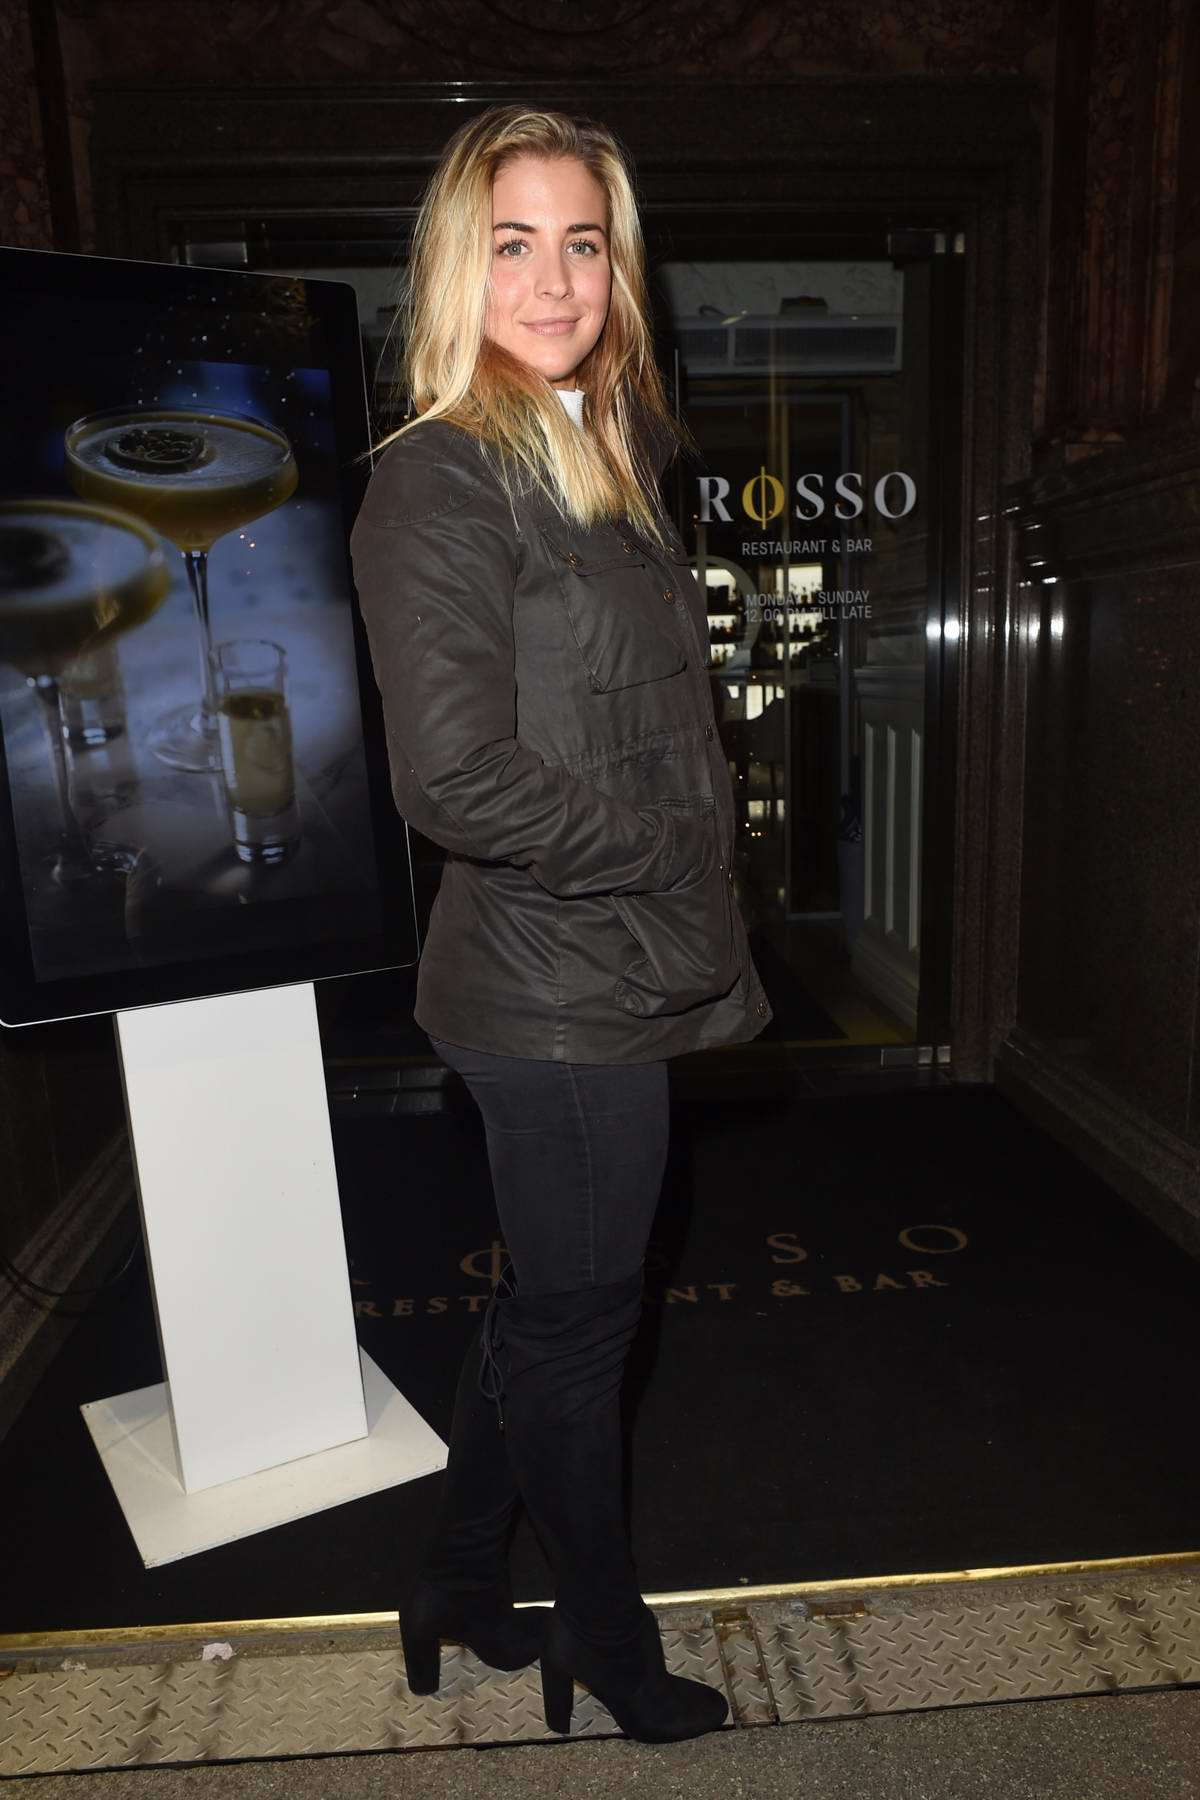 Gemma Atkinson leaving Rosso Restaurant in Manchester, UK